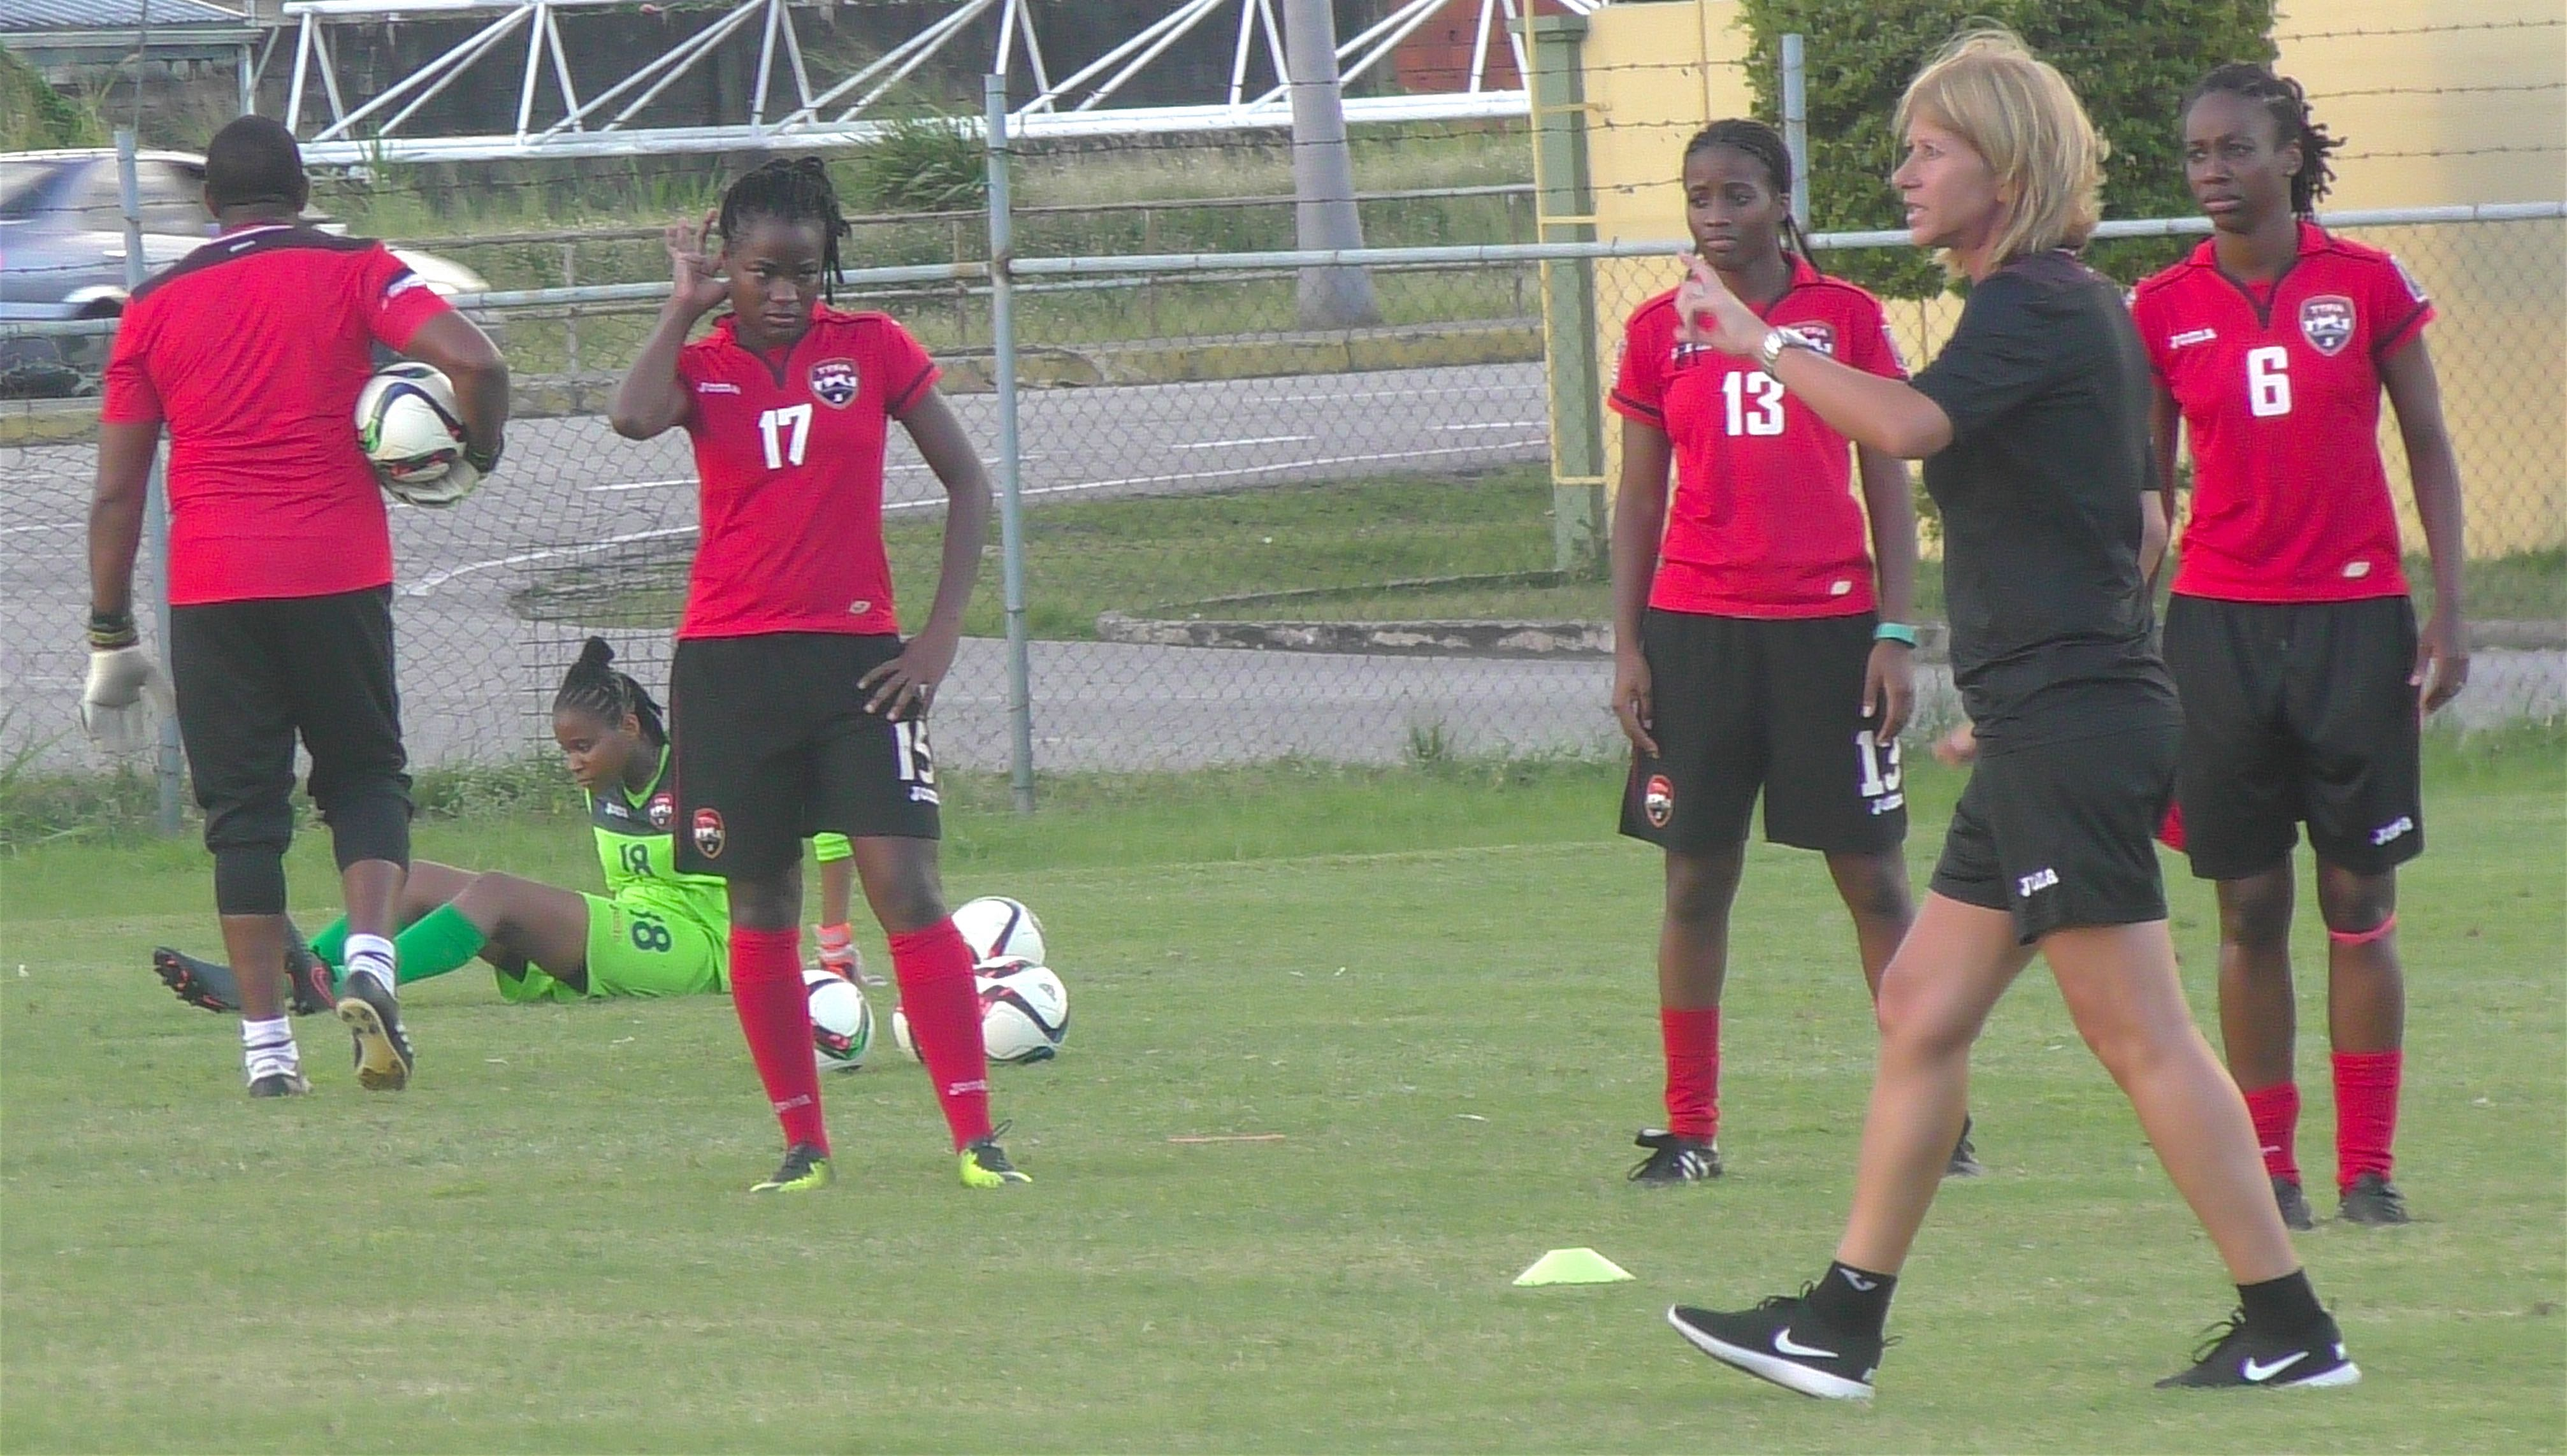 Morace presses on with Women's team preparations.